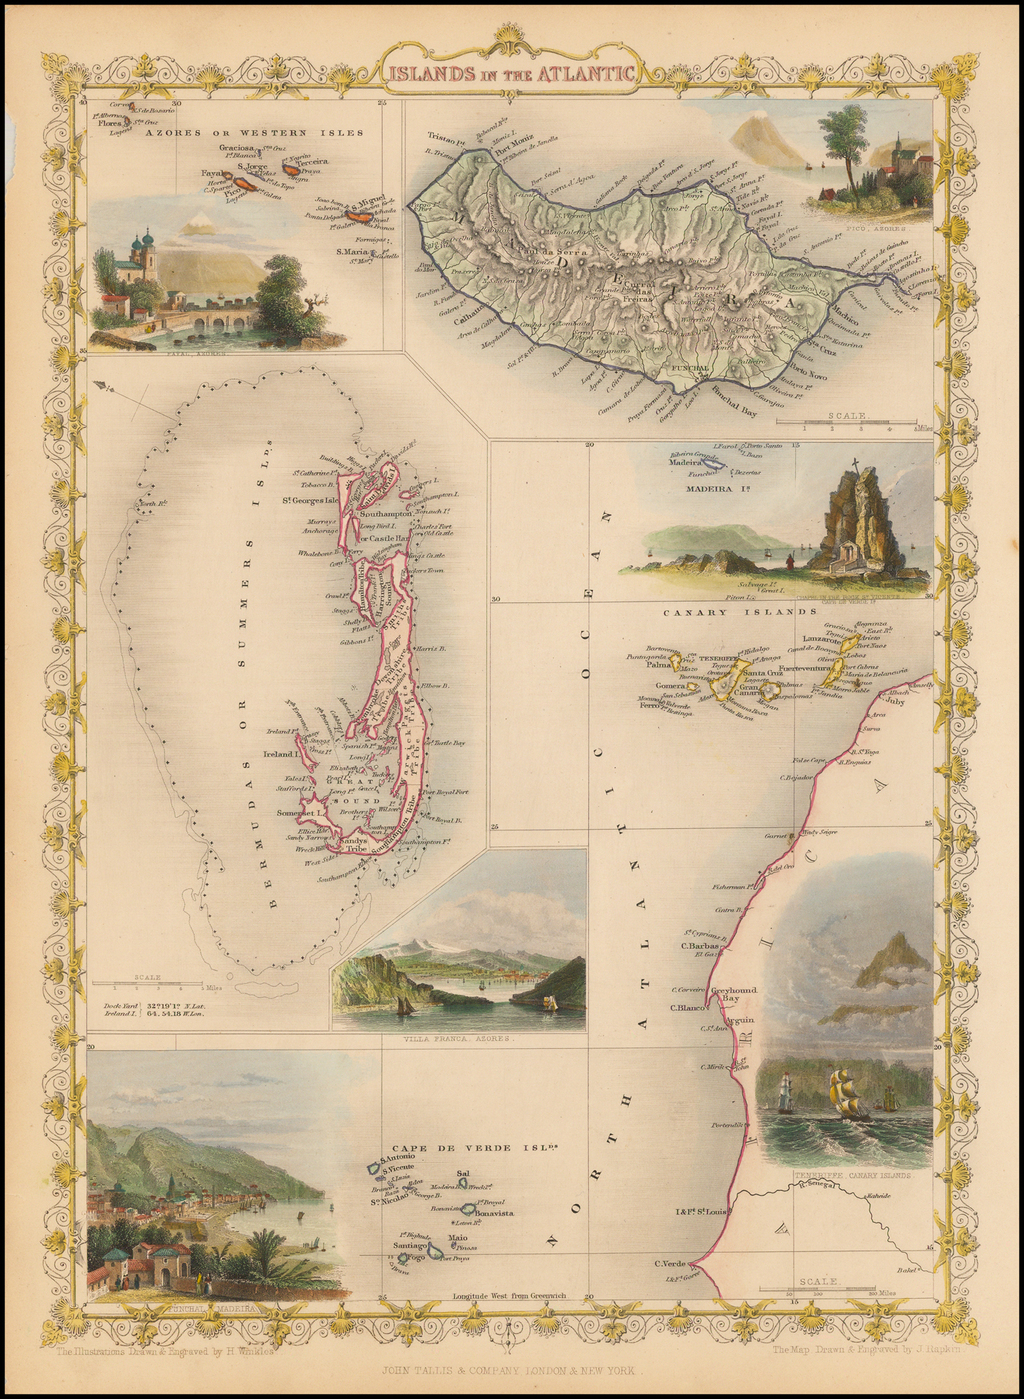 Islands in the Atlantic [Bermuda, Madeira, Canaries, Azores and Cape Verde Islands] By John Tallis